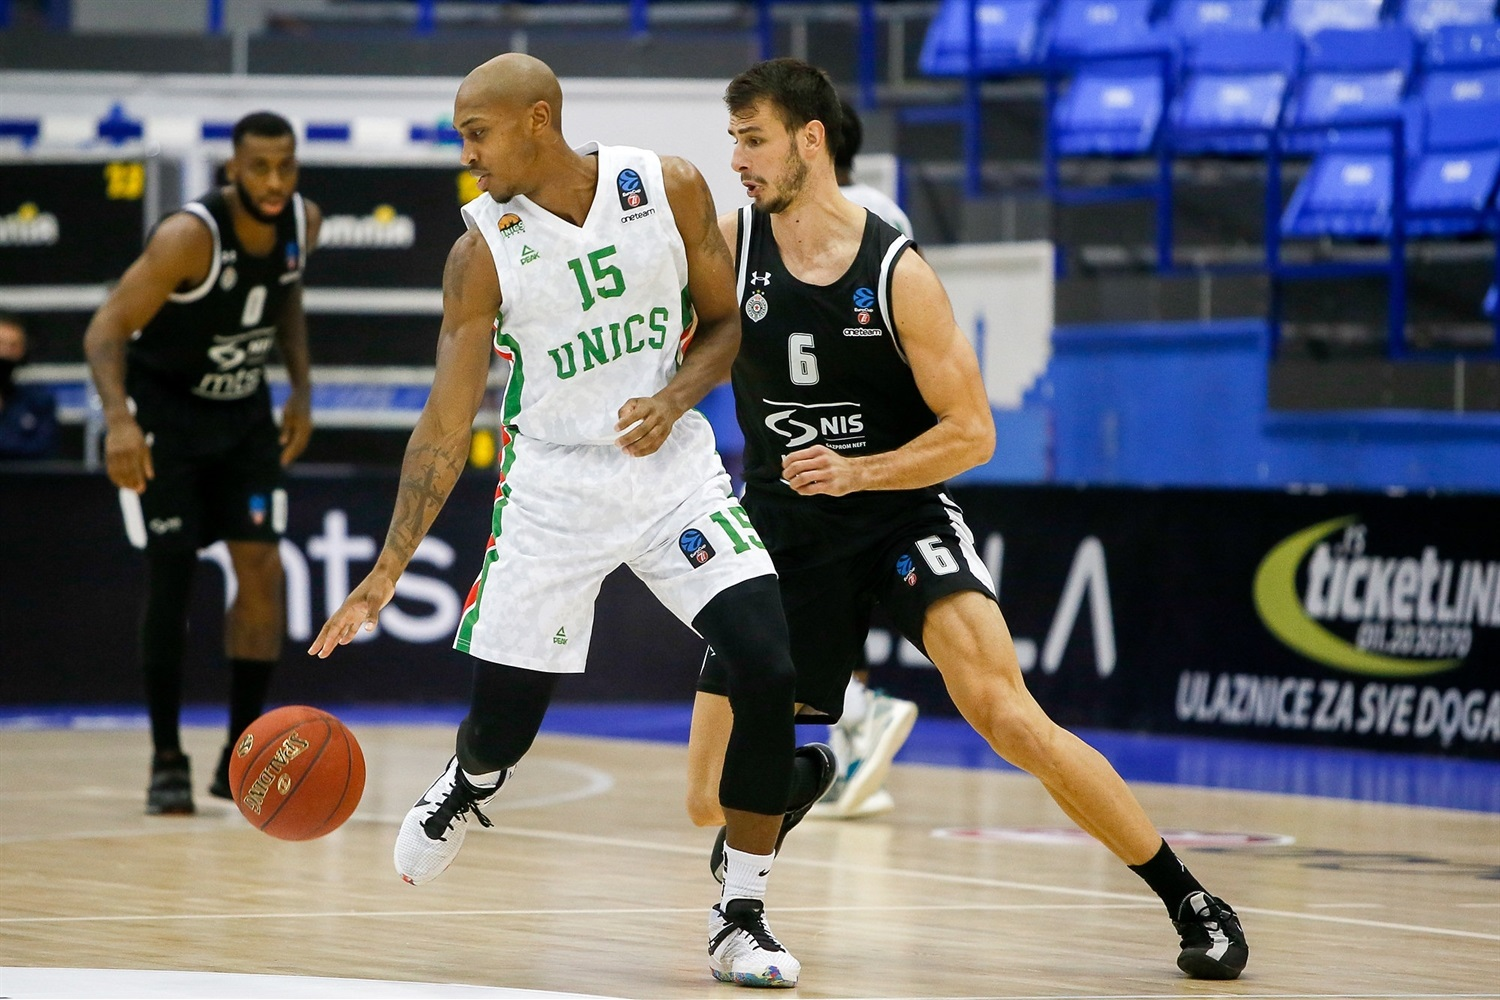 Jamar Smith - UNICS Kazan (photo Partizan - Dragana Stjepanovic) - EC20